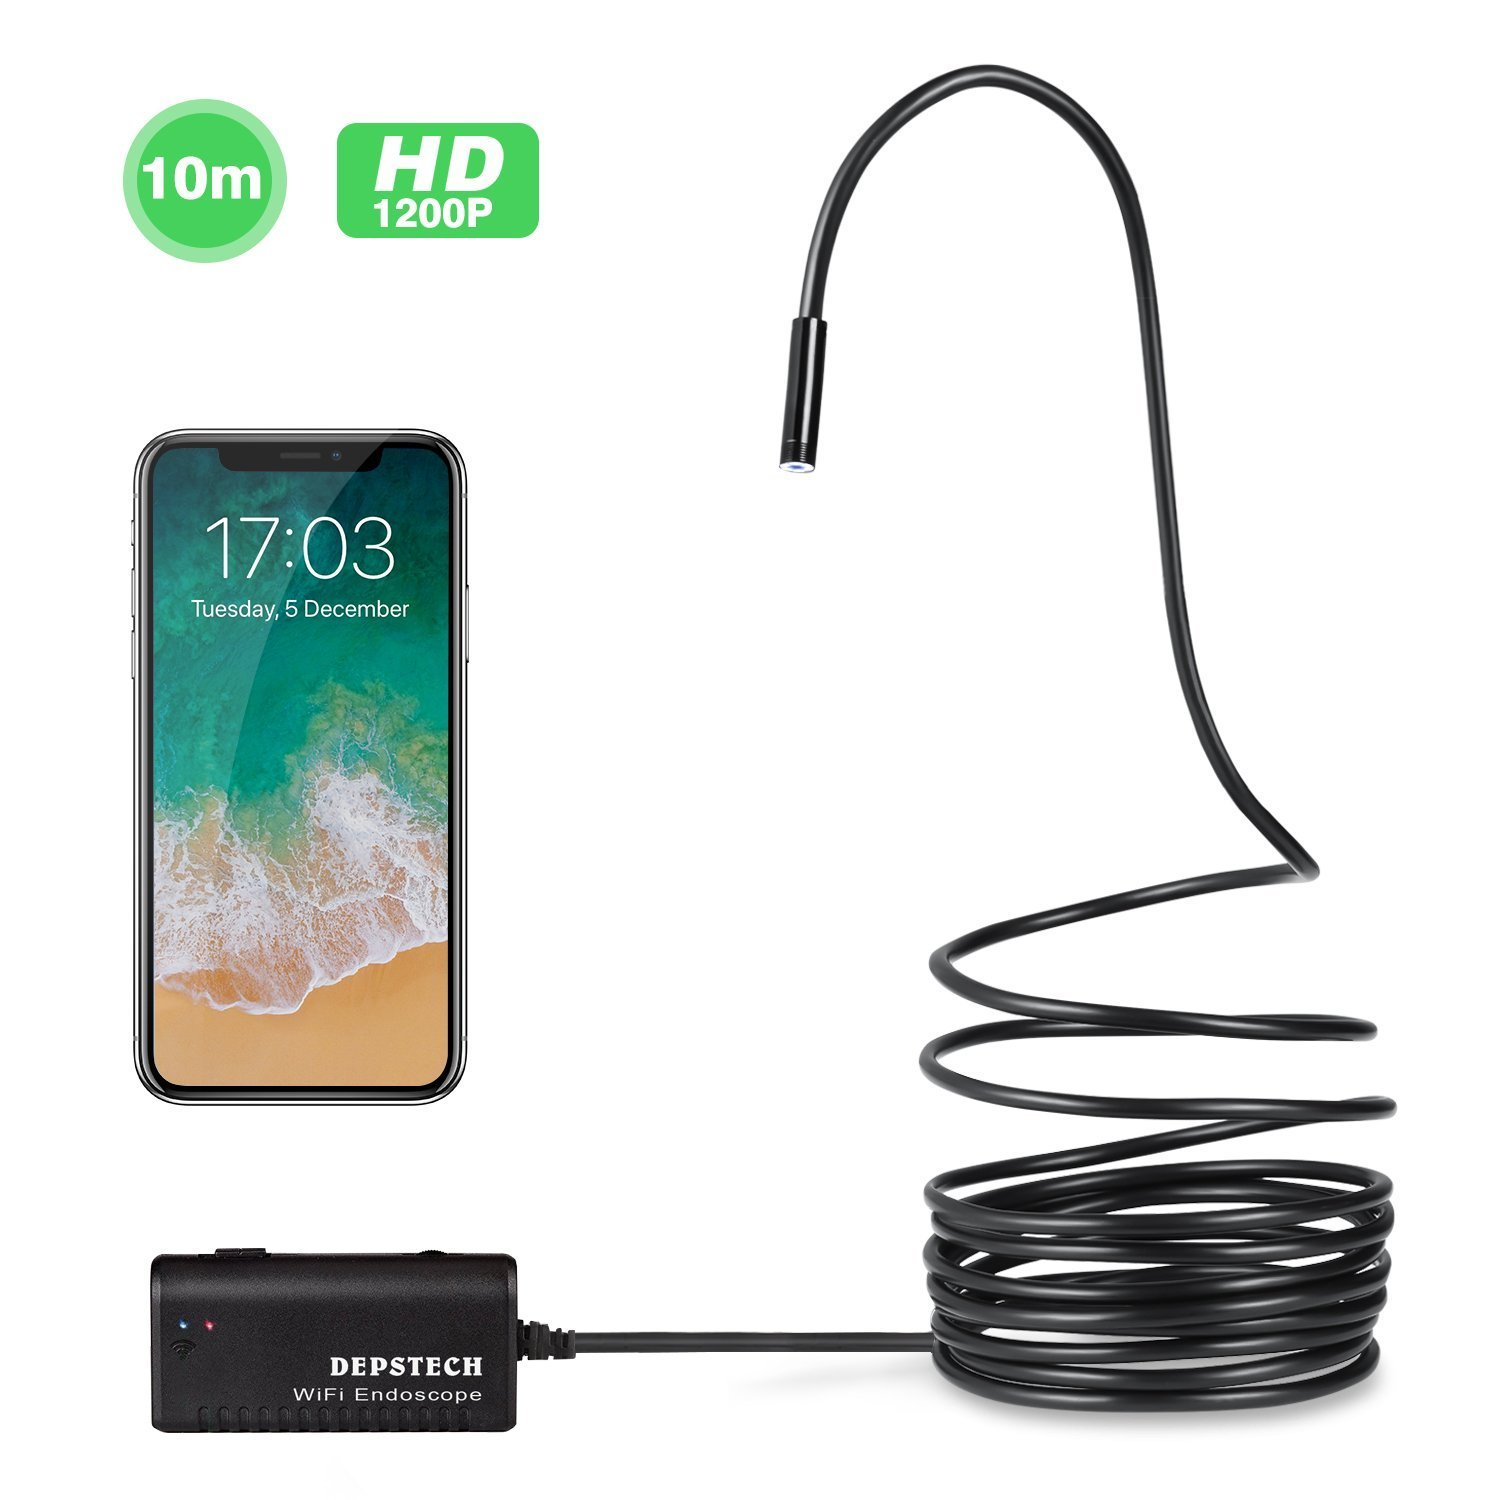 Wireless Endoscope, Depstech Semi-Rigid WiFi Borescope Inspection Camera 2.0 Megapixels HD Snake Camera for Android and iOS Smartphone, iPhone, Samsung, Tablet - Black (33FT)